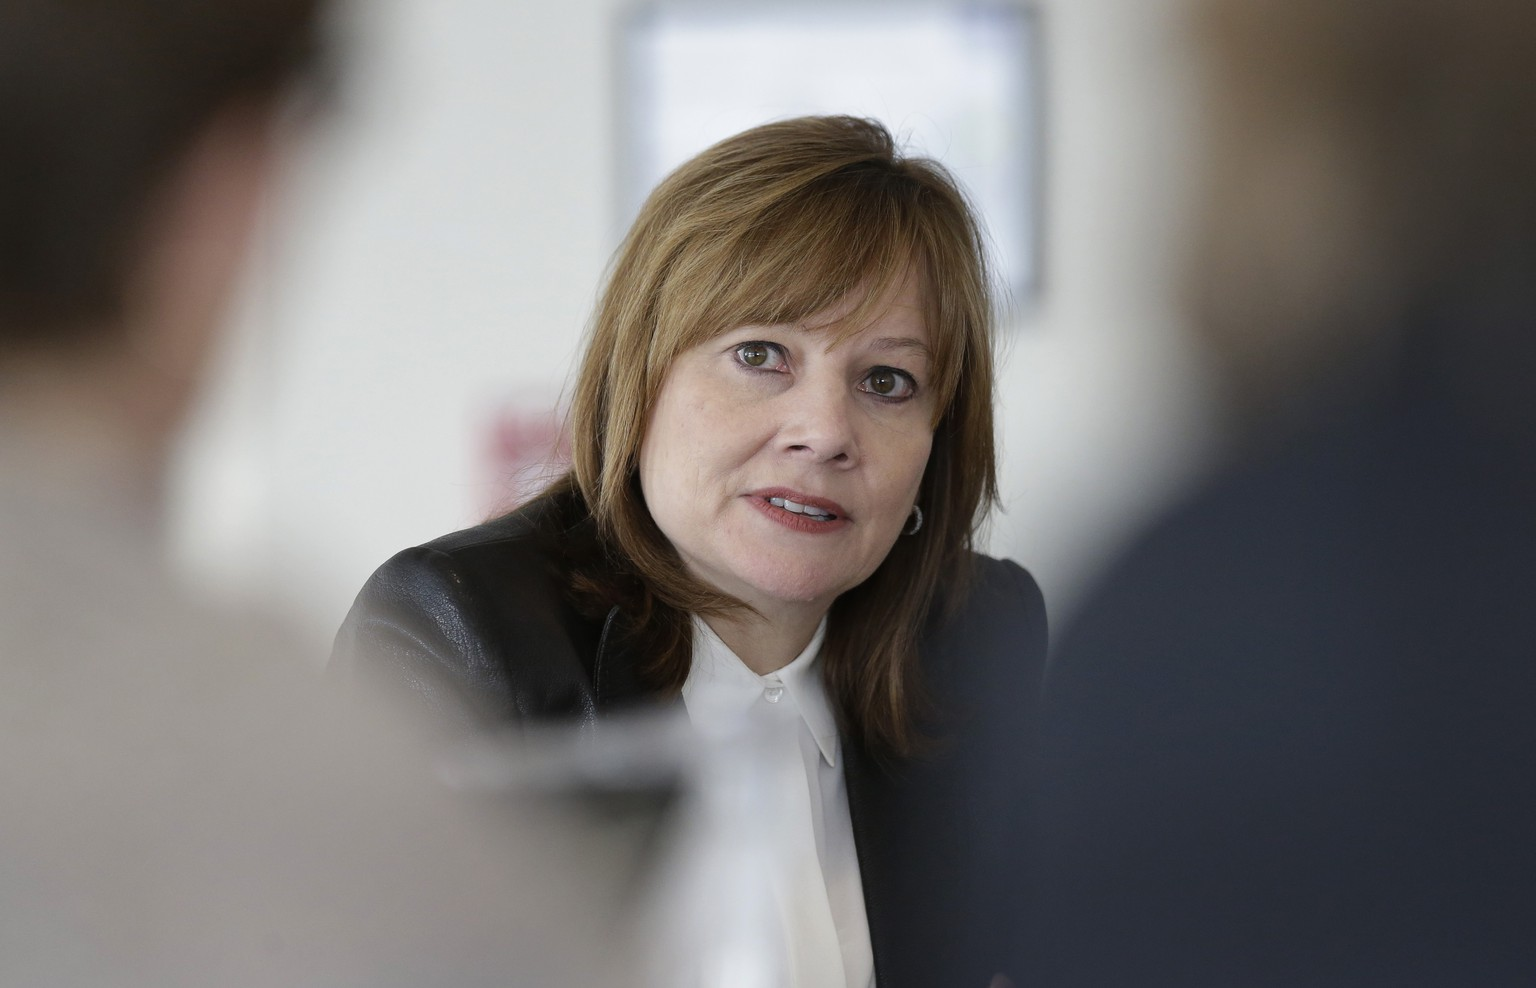 File-This photo taken Jan. 23, 2014, shows General Motors CEO Mary Barra addressing the media during a roundtable meeting with journalists in Detroit. Barra will be asked by two Congressional subcommittees why it took GM a decade to recall cars with faulty ignition switches that the company says are now linked to 13 deaths. (AP Photo/Carlos Osorio, File)